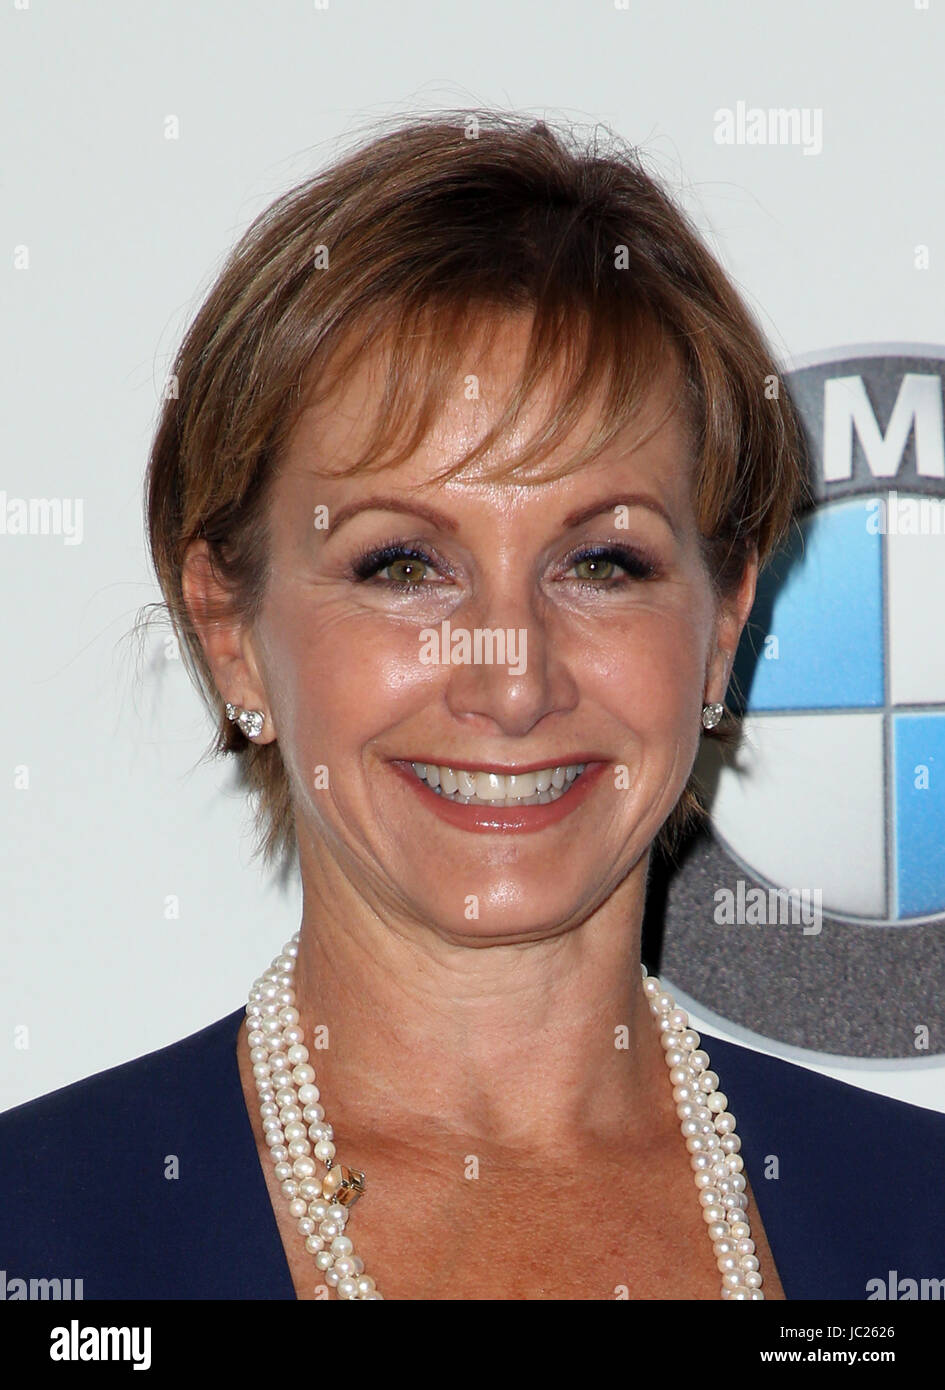 Forum on this topic: Ruth Maleczech, gabrielle-carteris/